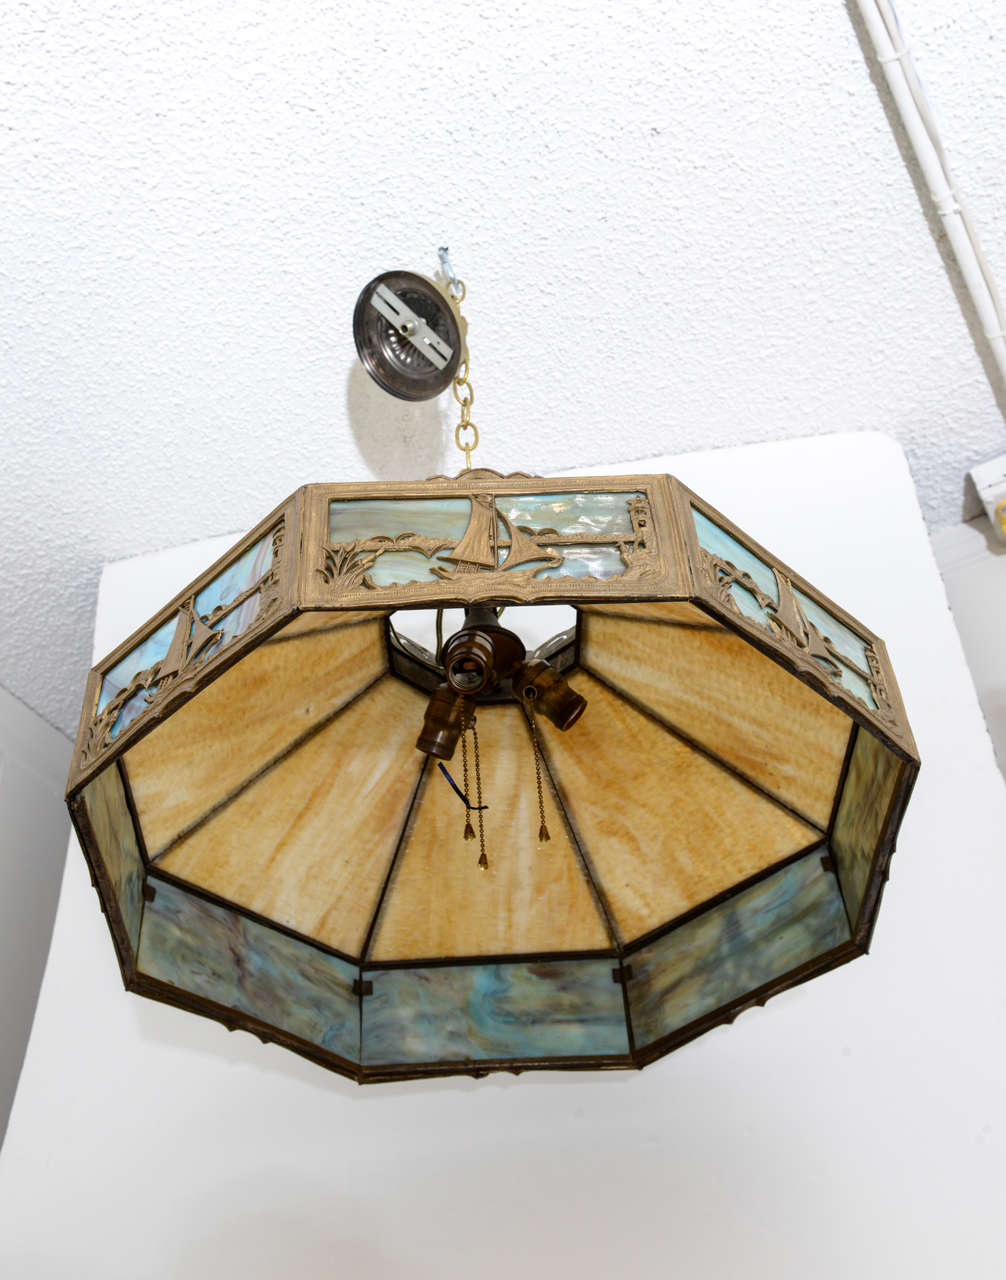 American arts and crafts chandelier slag glass nautical for Arts and crafts chandelier